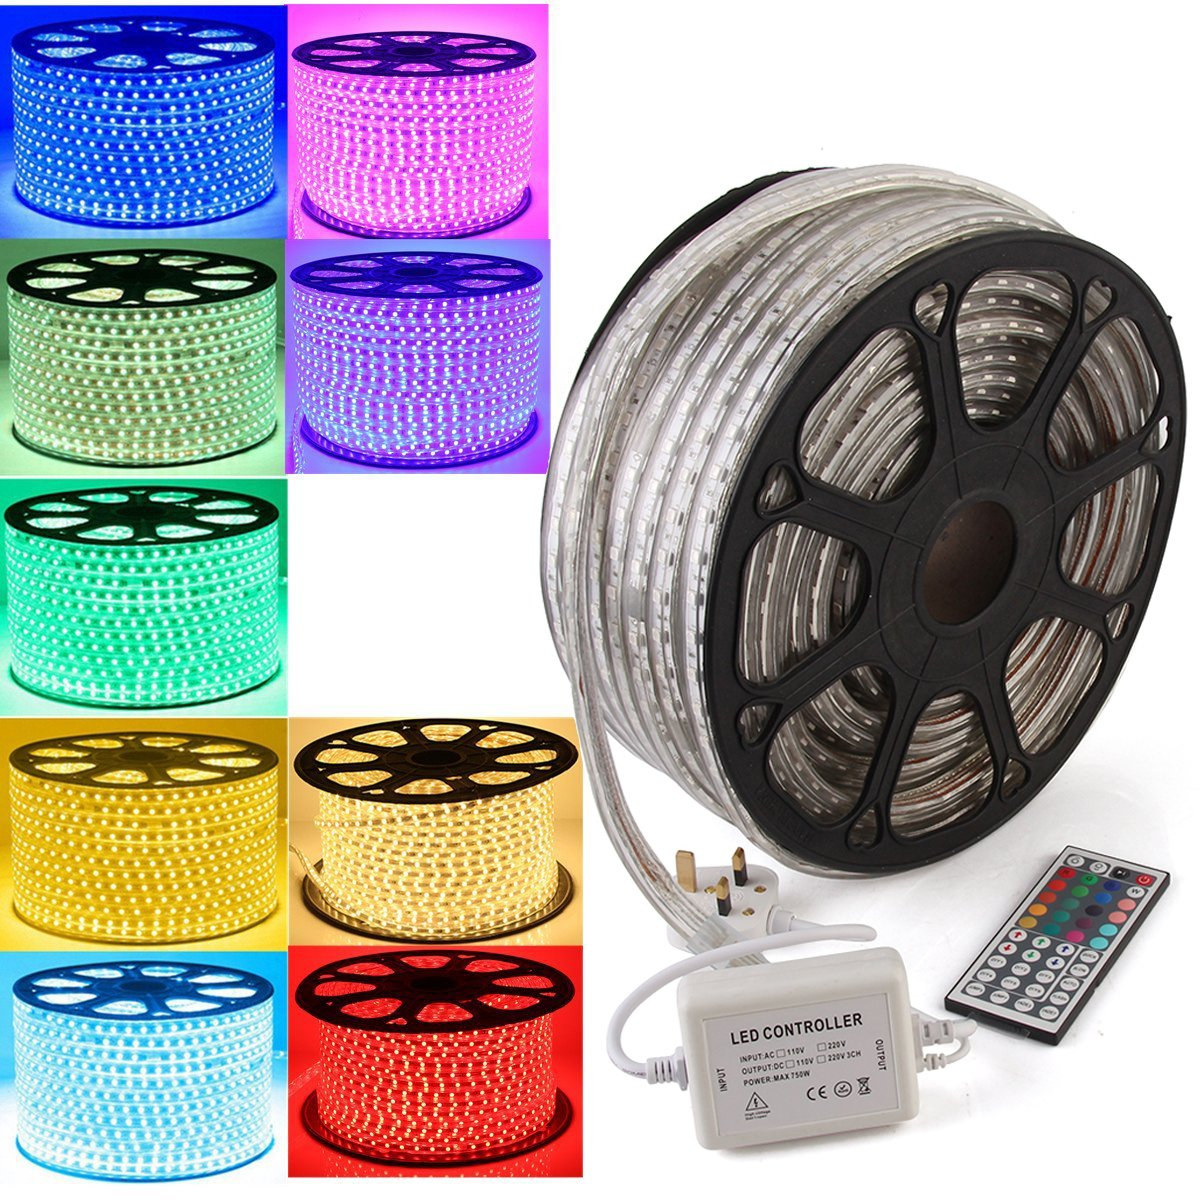 GreenSun LED Lighting Waterproof 20M RGB LED Strip Light, 5050 SMD Flexible LED Ribbon Decorative Light with 44 Key IR Remote Controller for Garden, Home, Kitchen, Bar, DIY Party, Christmas